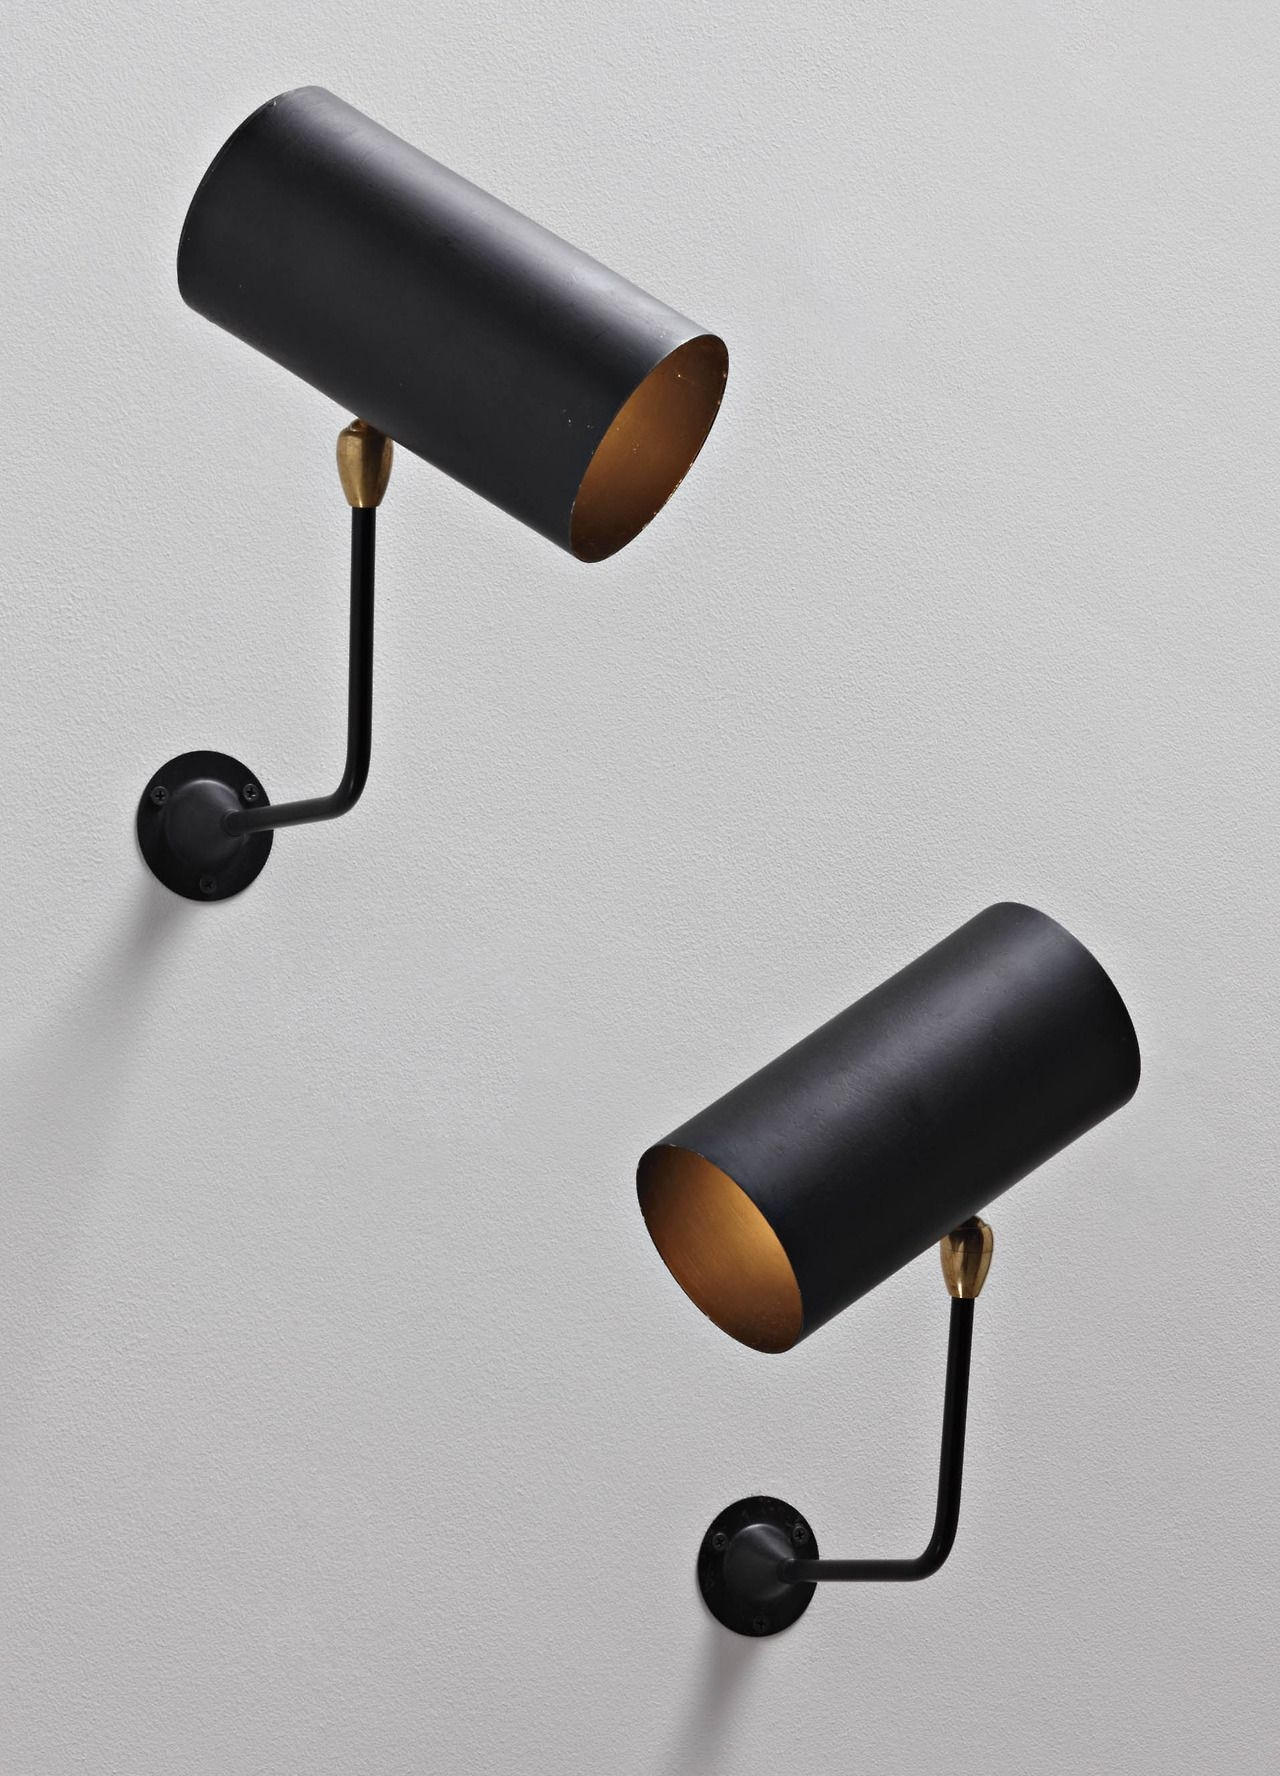 Bedside Wall Lamps For Reading 1